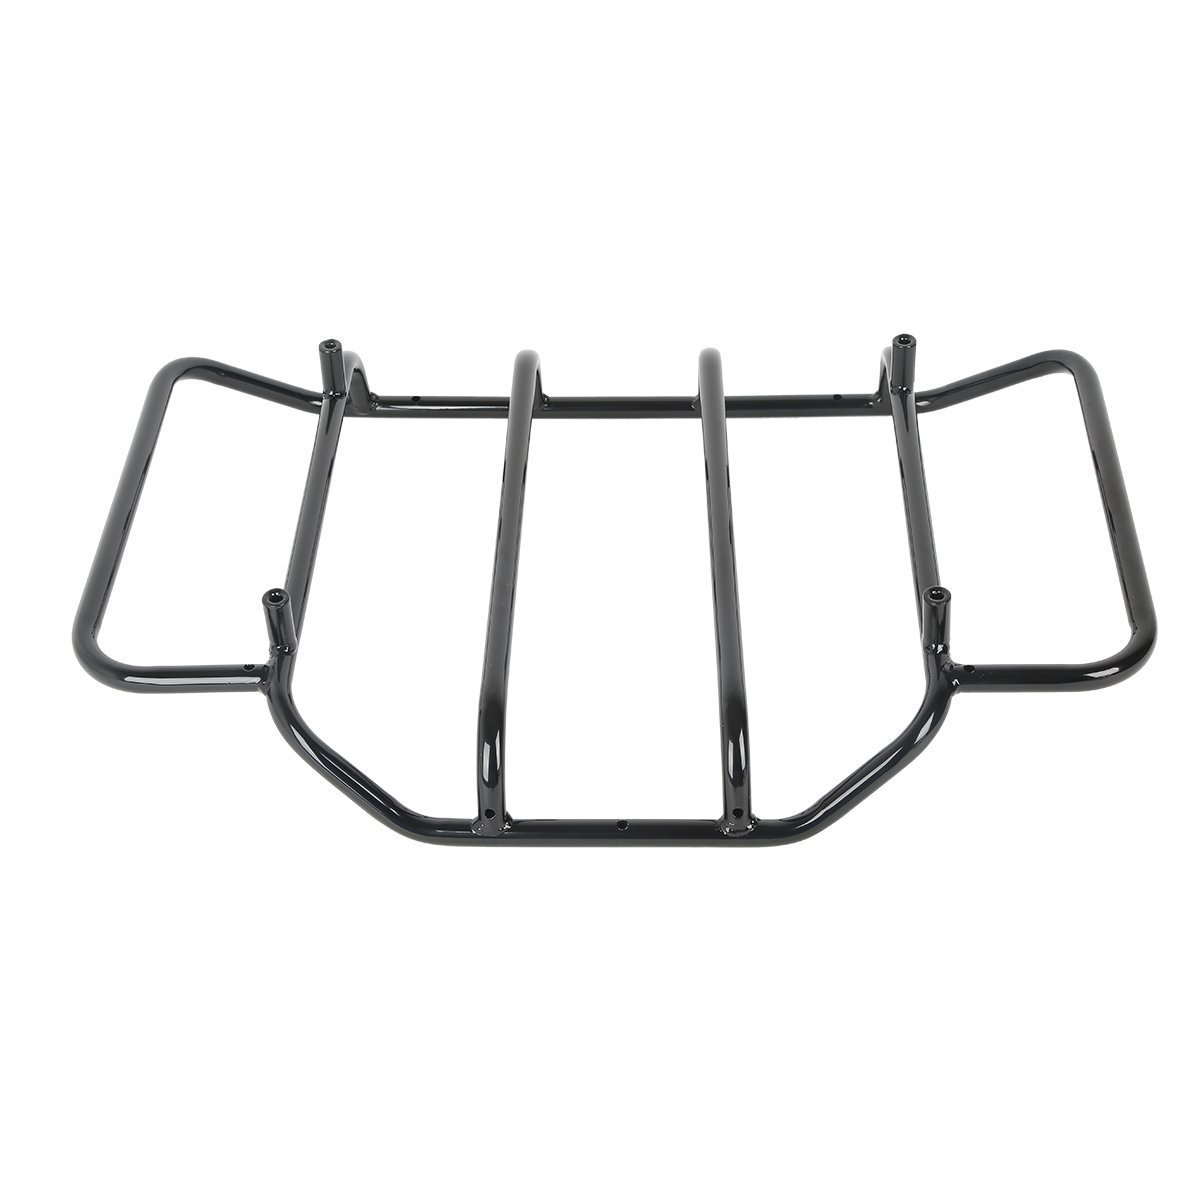 XFMT Tour Pak Luggage Rack Compatible with Harley Touring Road King Street Glide Classic 1984-2019 Chopped and Razor-Pak Tour-Pak Carrier Lids